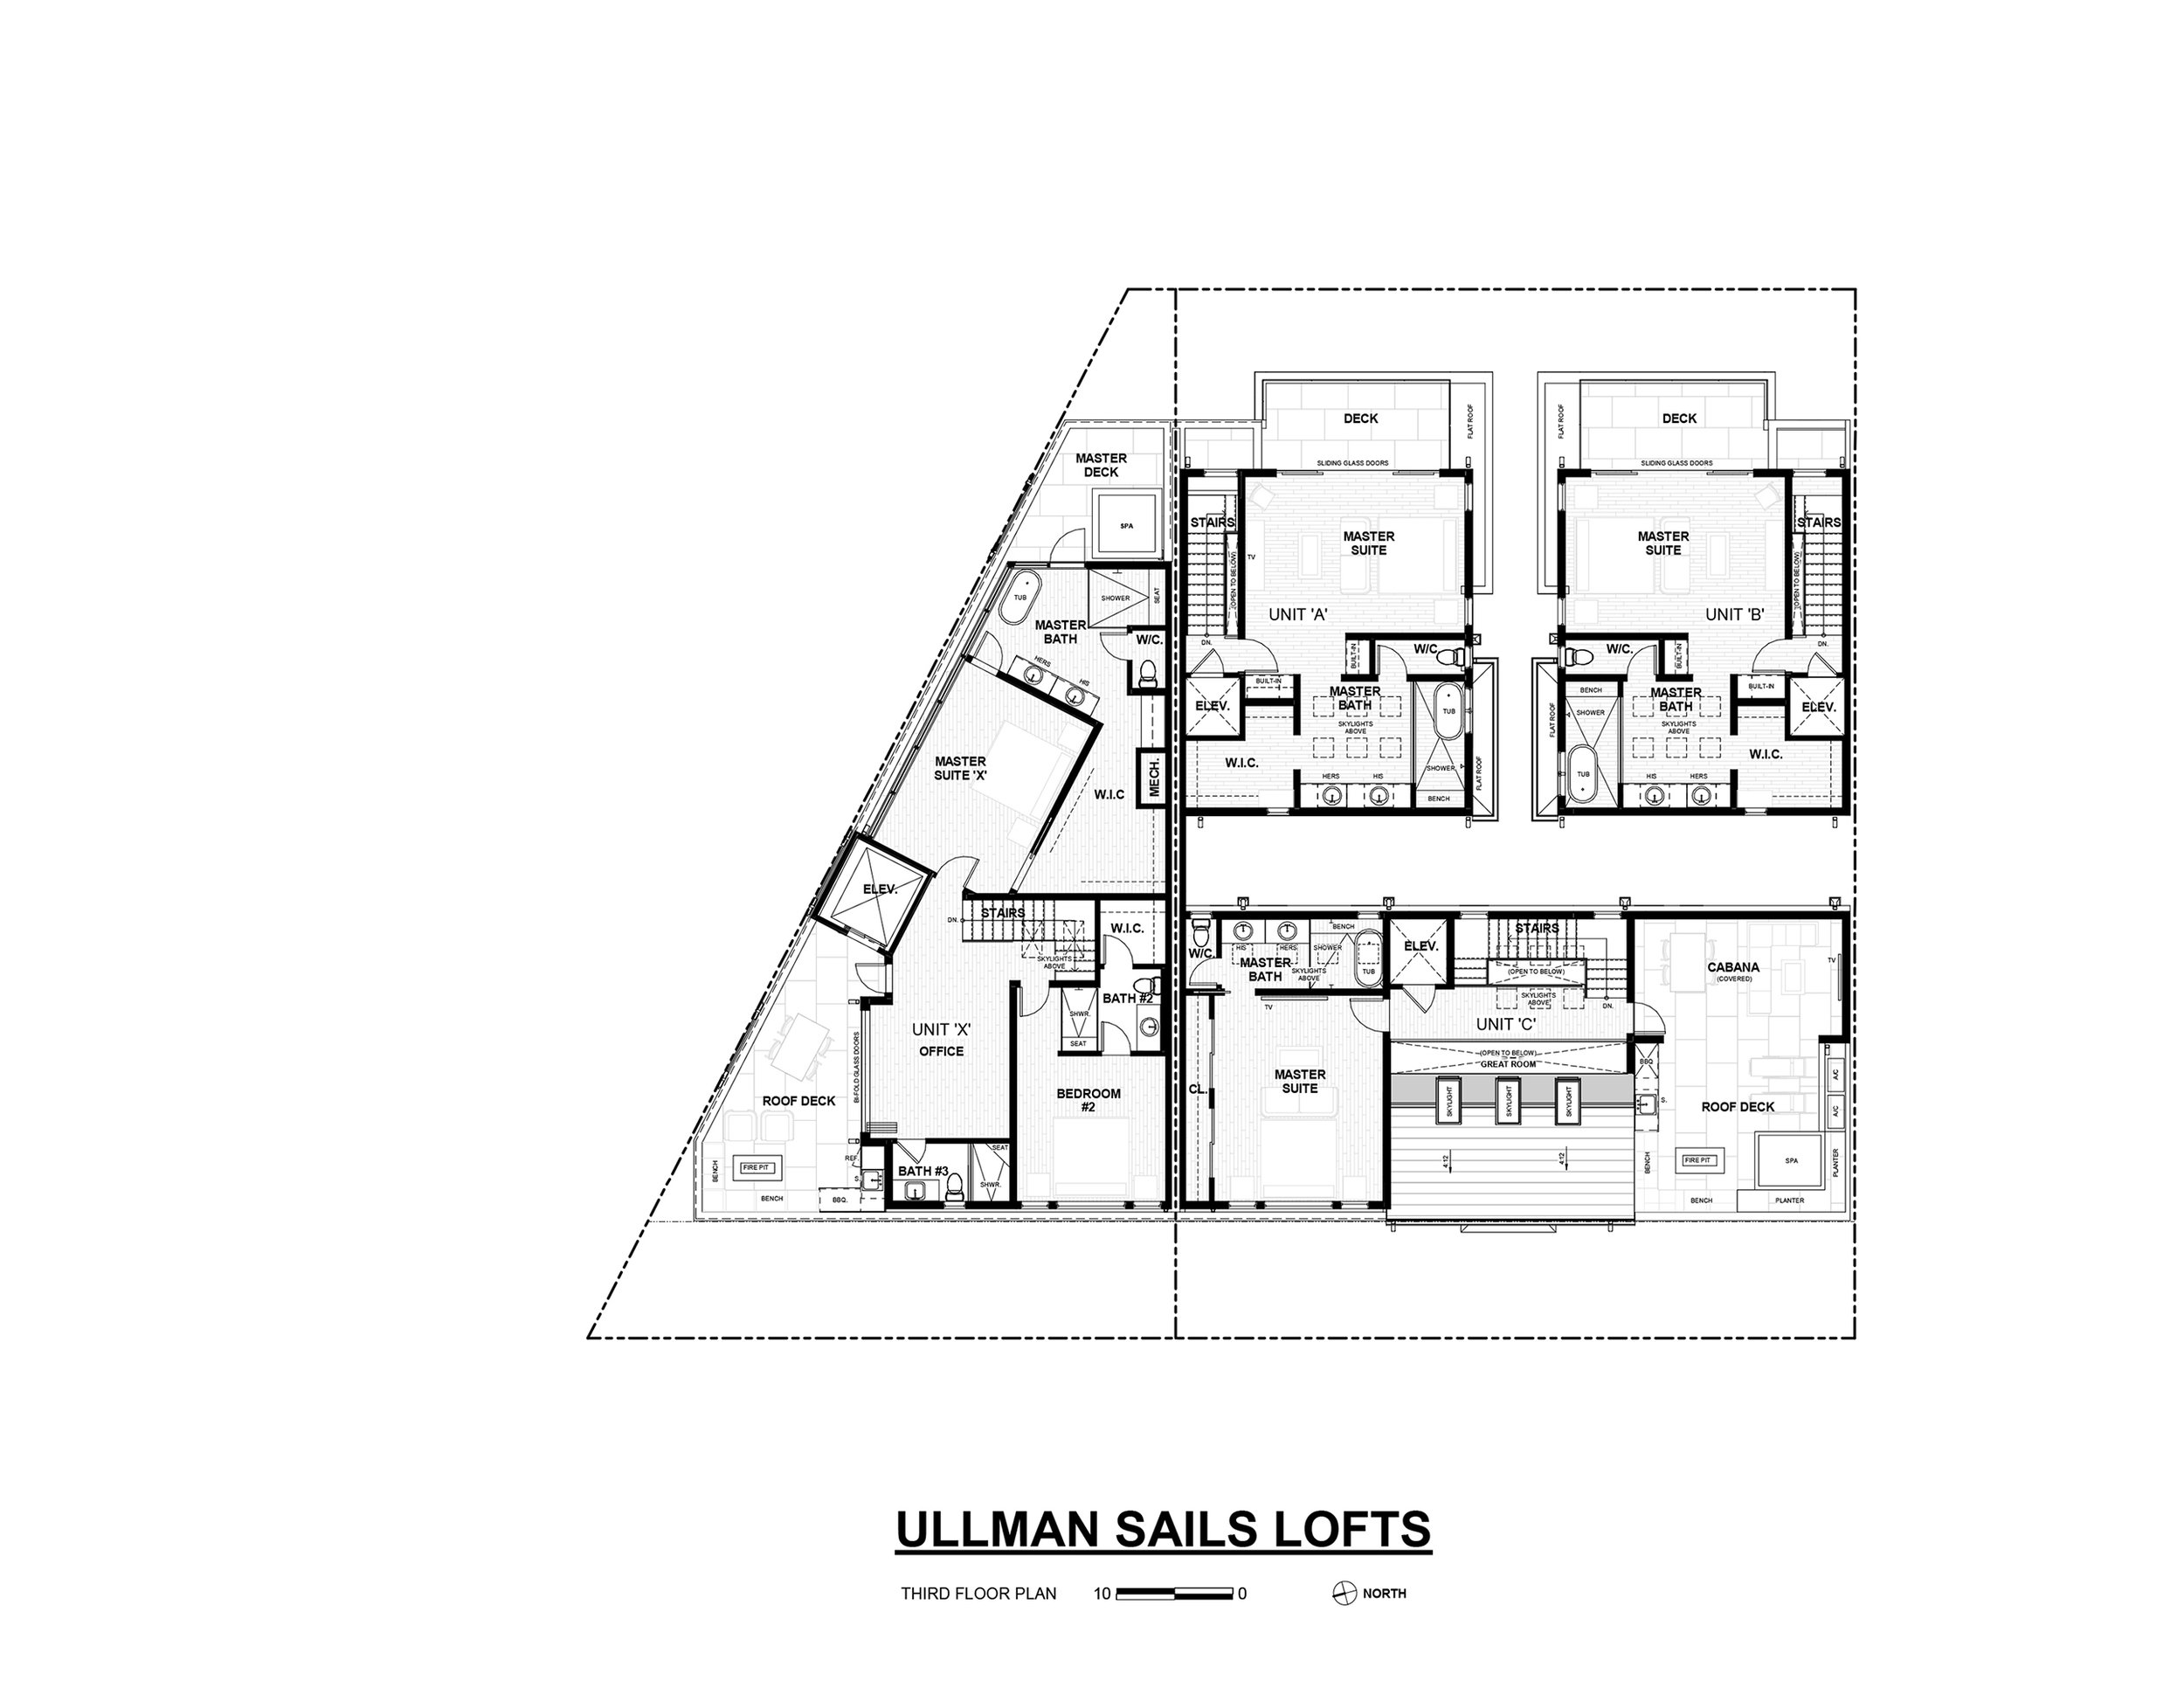 5607_DA2017_10_THIRD FLOOR PLAN.jpg